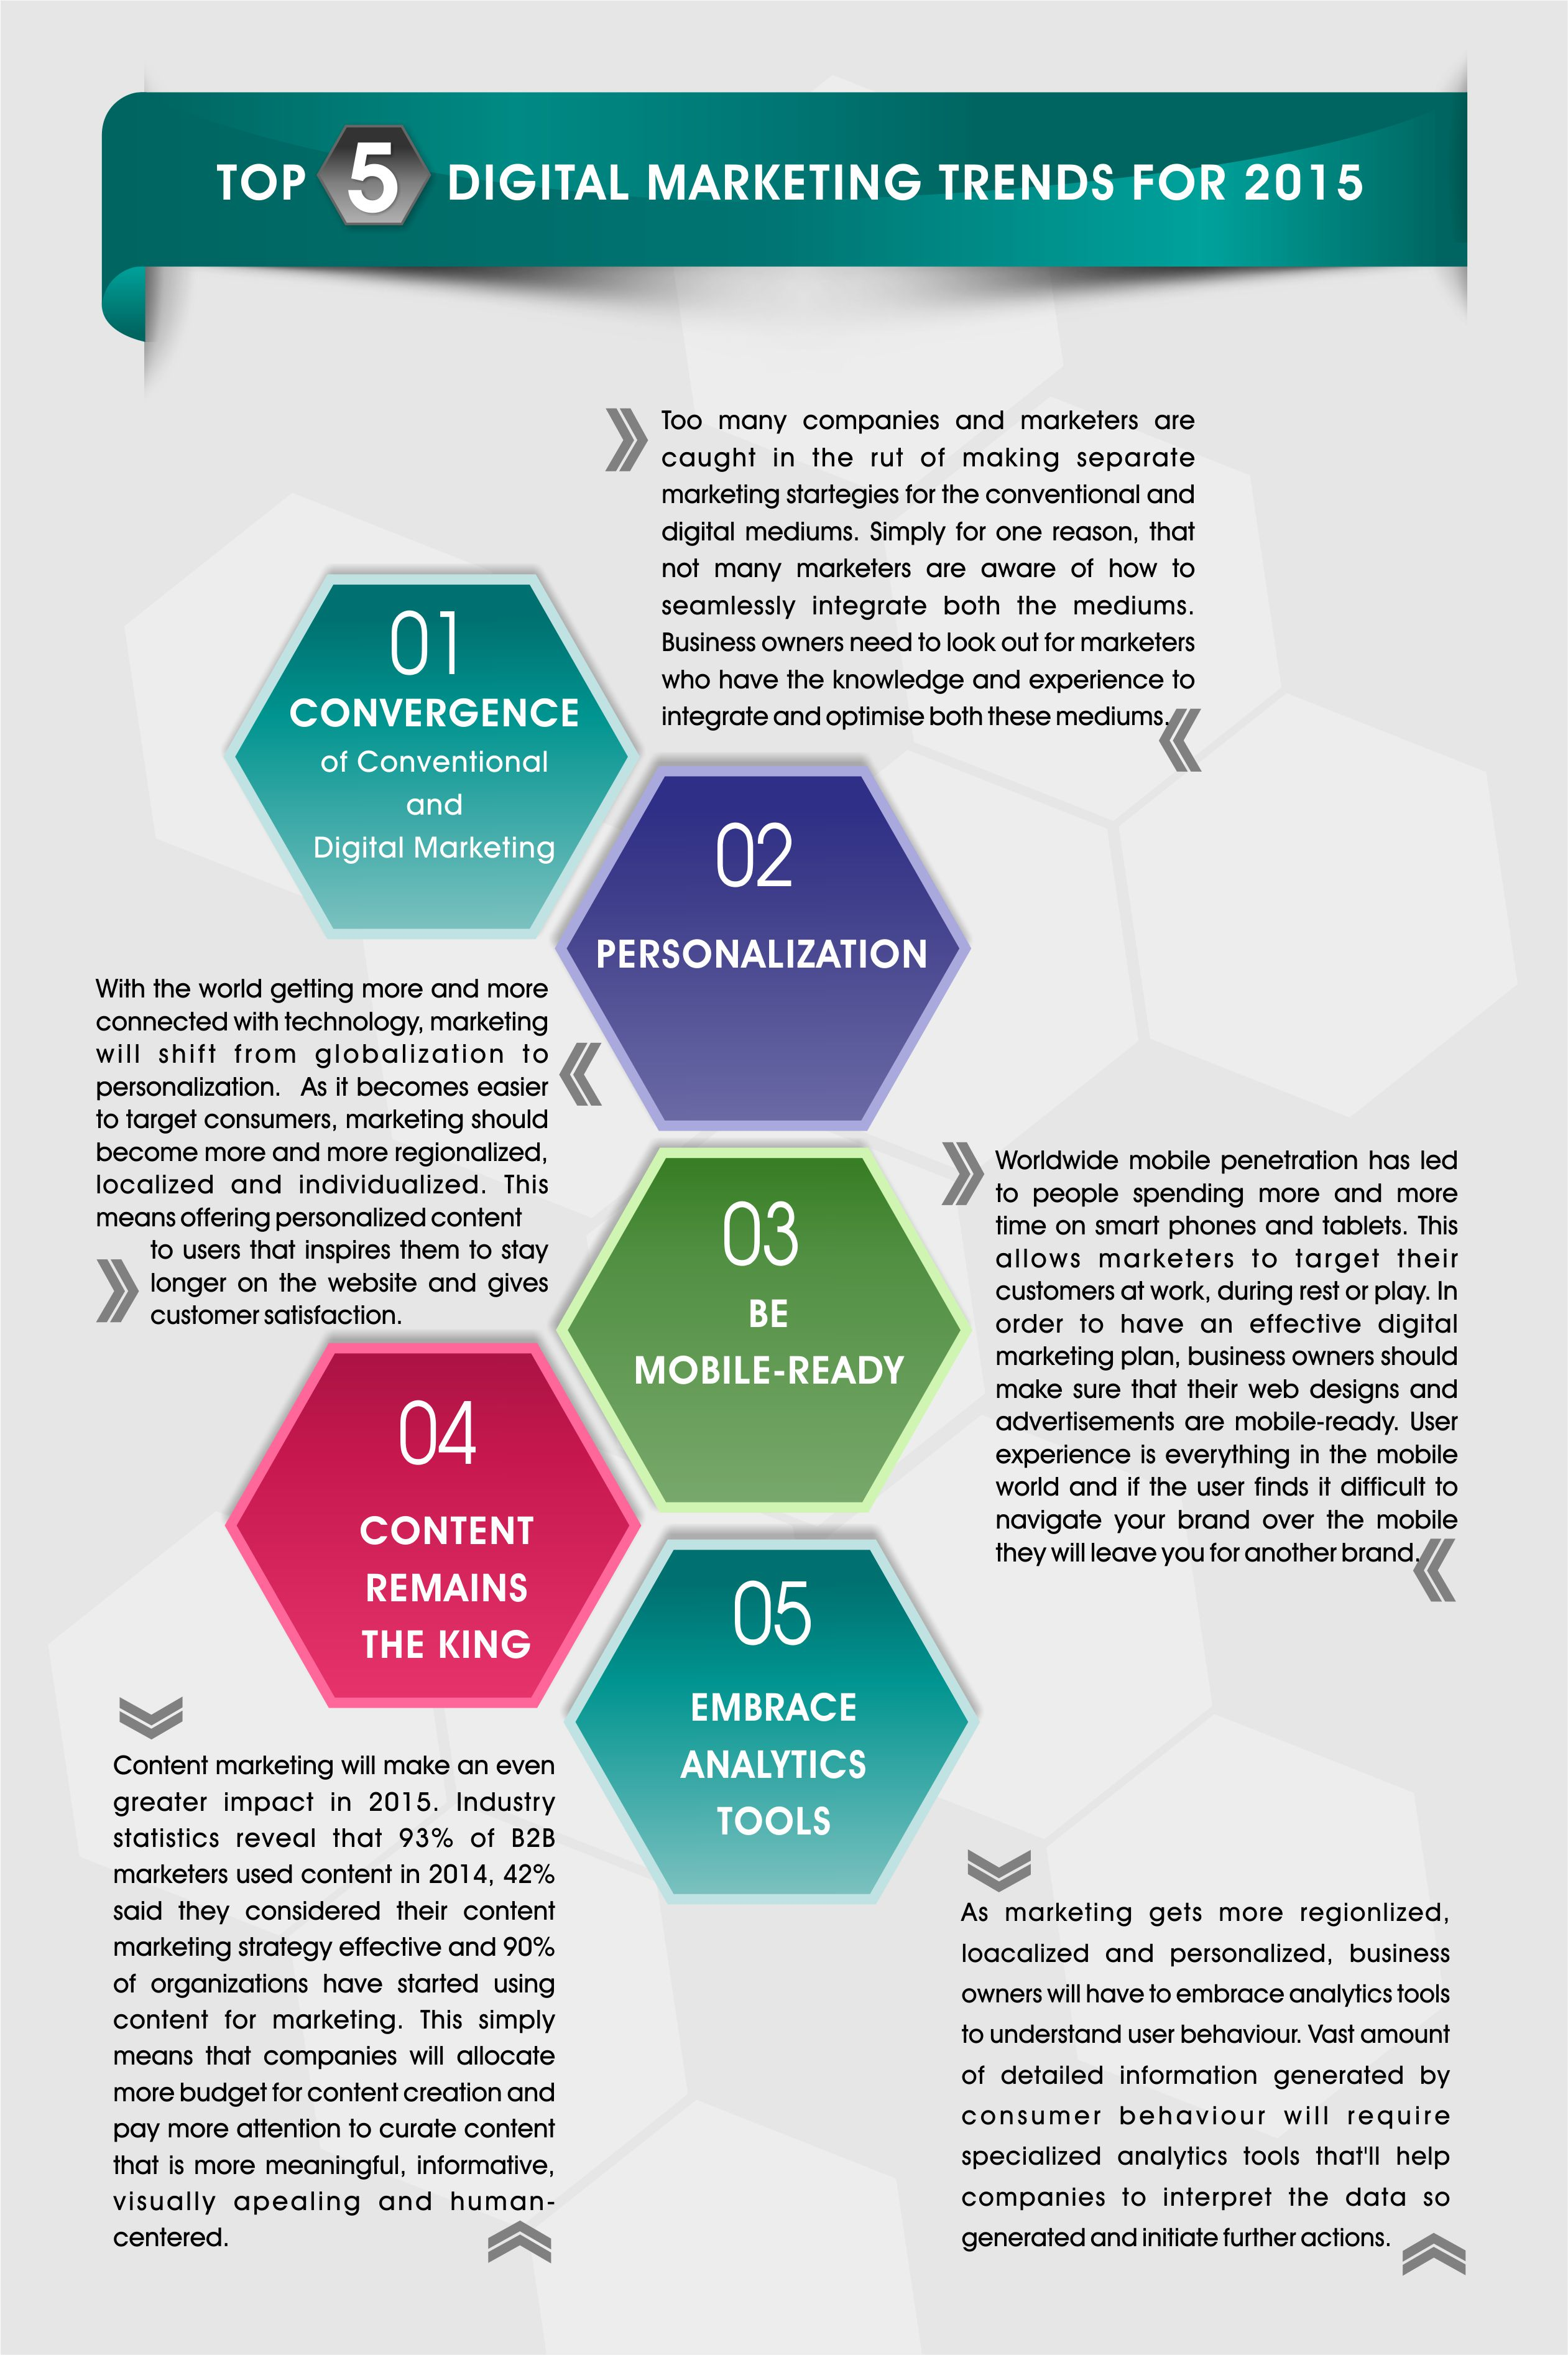 Digital marketing trends 2015-Digilandscape